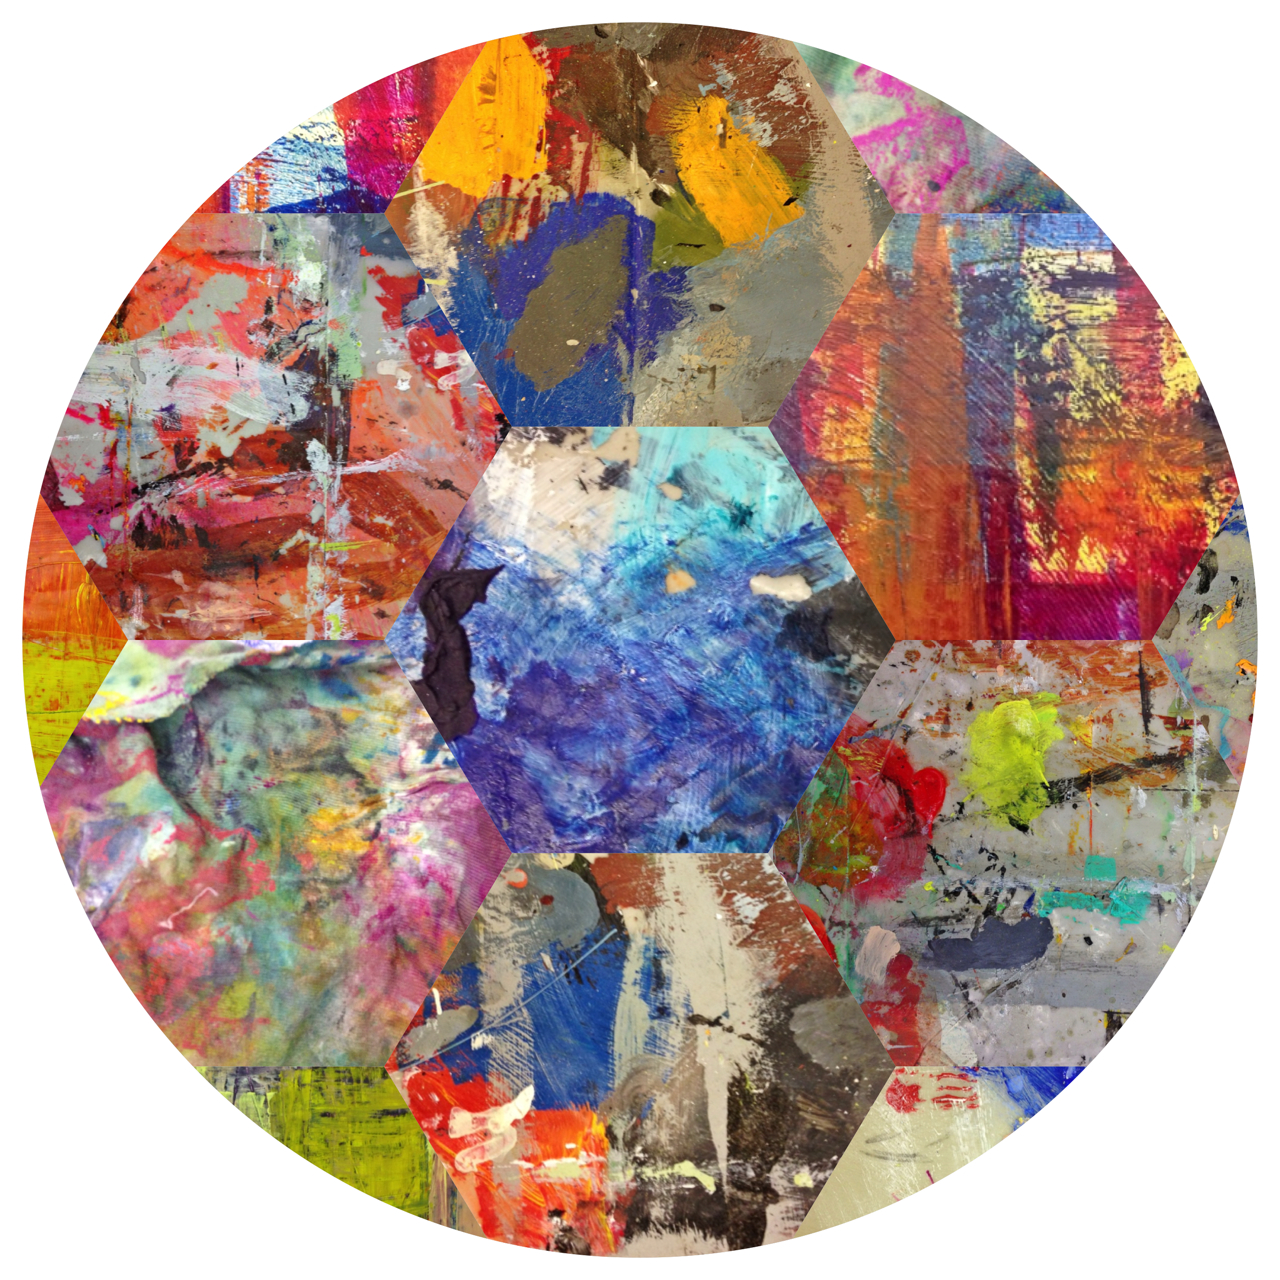 Pealing back the layers… Abstract Circle #4 by MCGadlin #gadlinscanvas